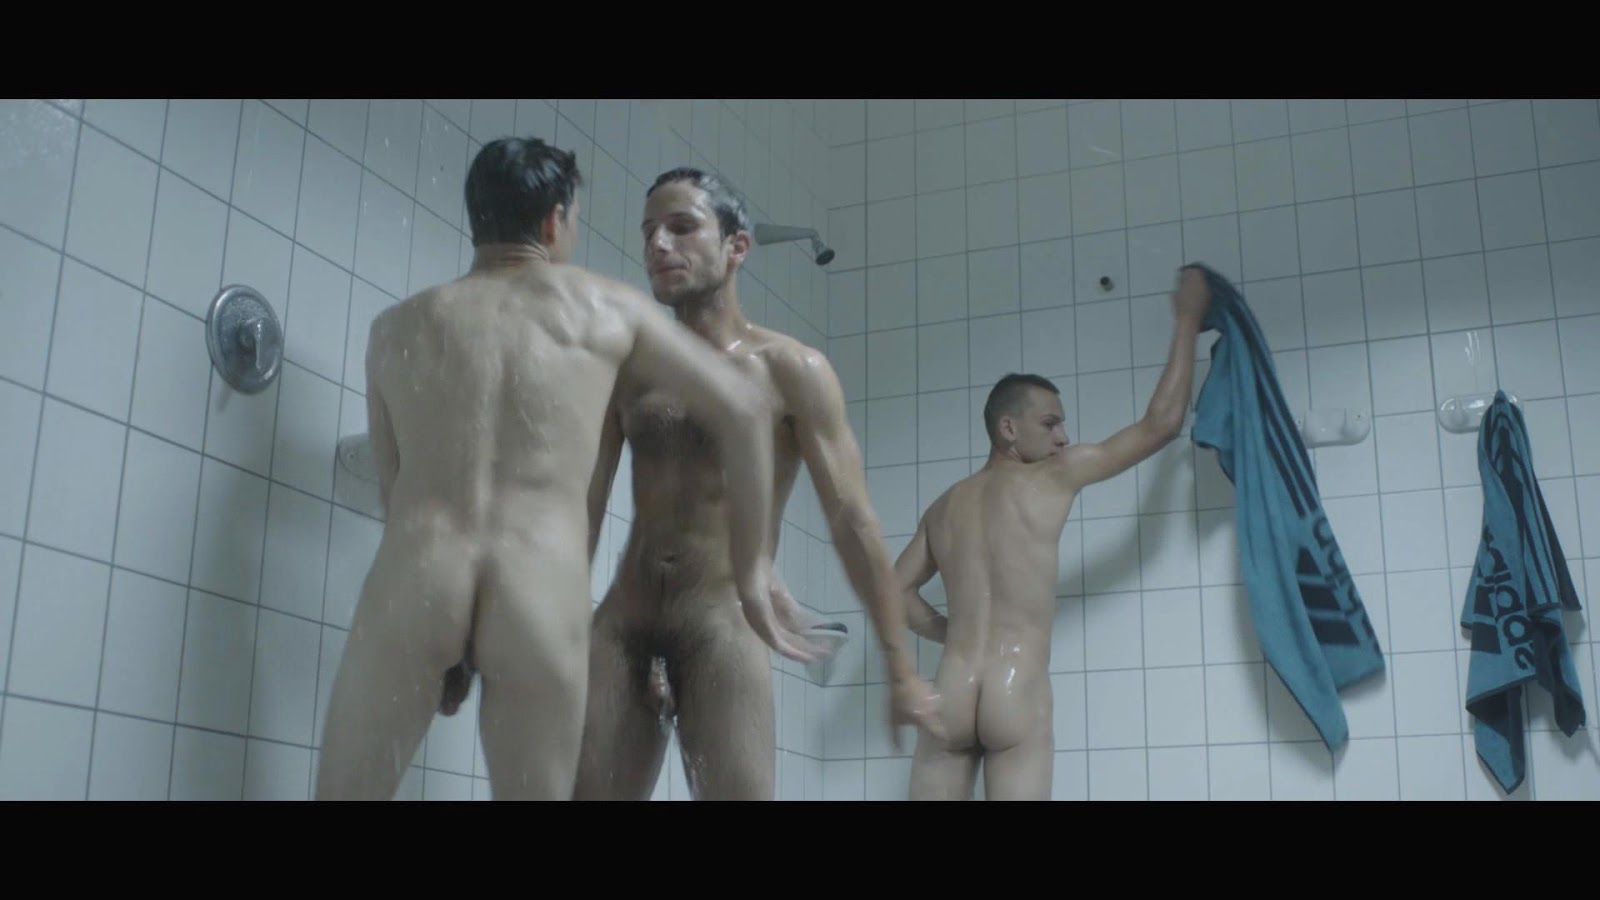 Male Frontal Nudity In Movies 20